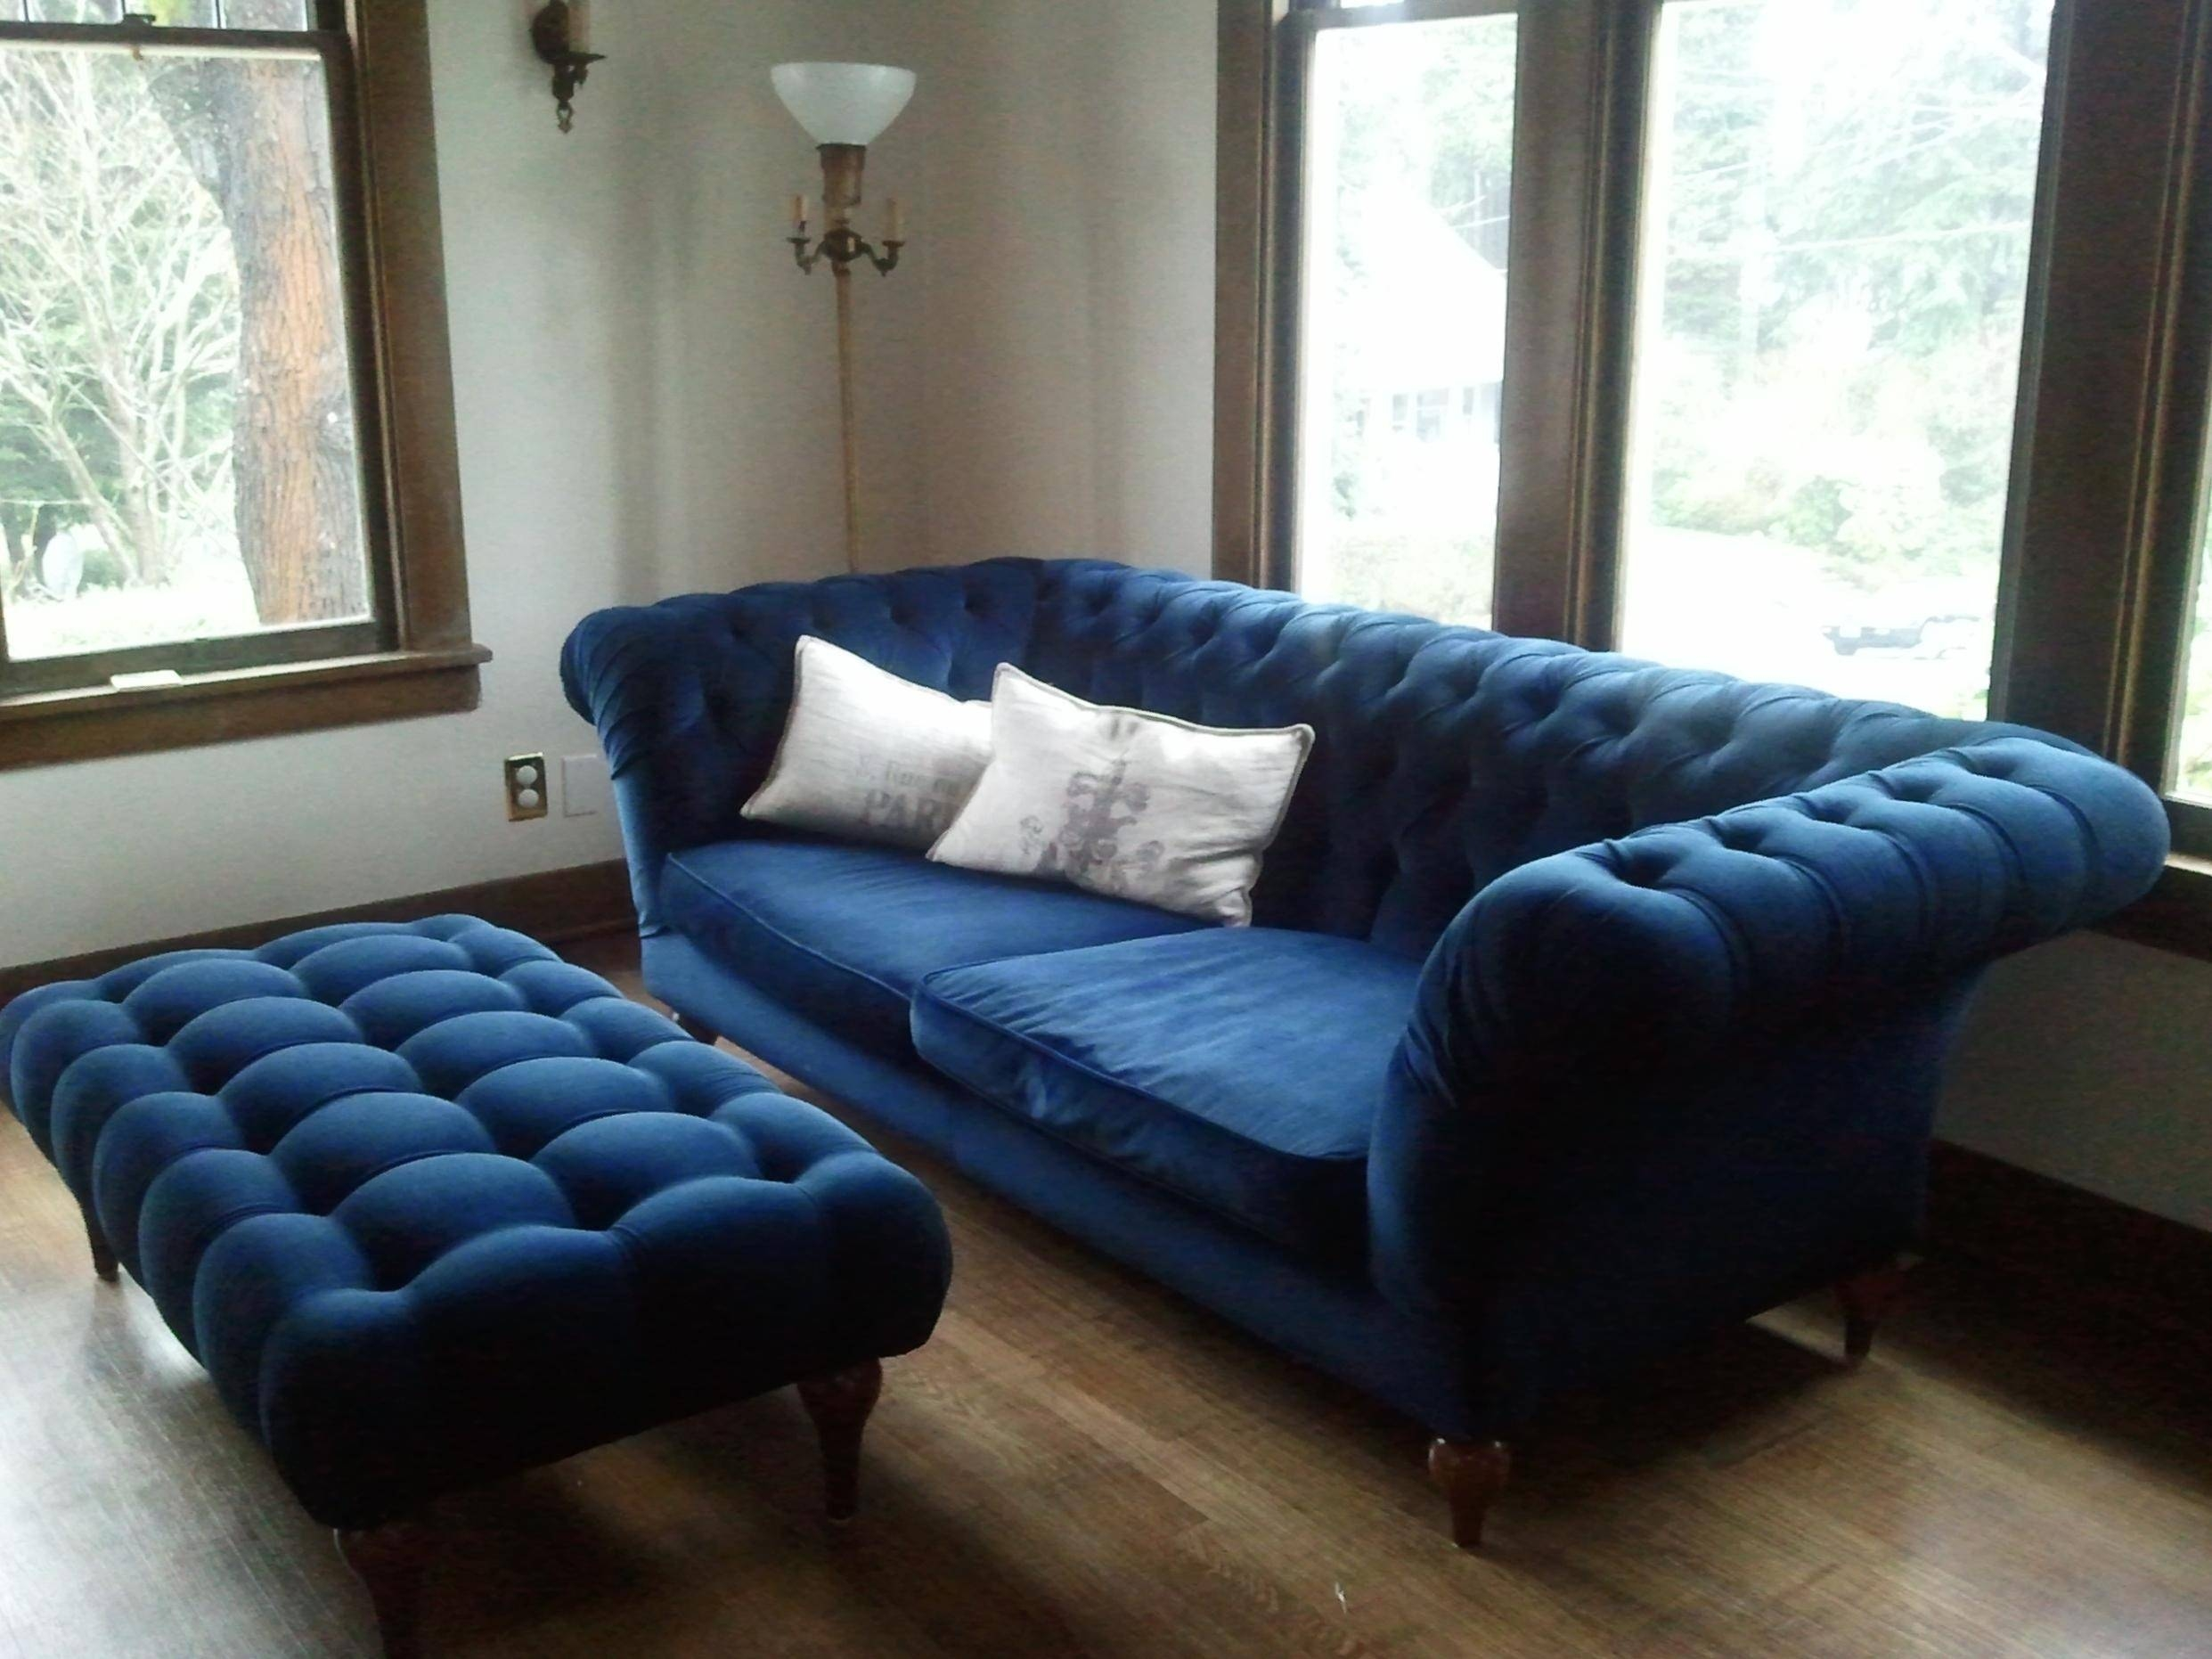 20 Best Ideas Craigslist Sectional Sofas | Sofa Ideas Inside Craigslist Sectional Sofas (View 3 of 15)